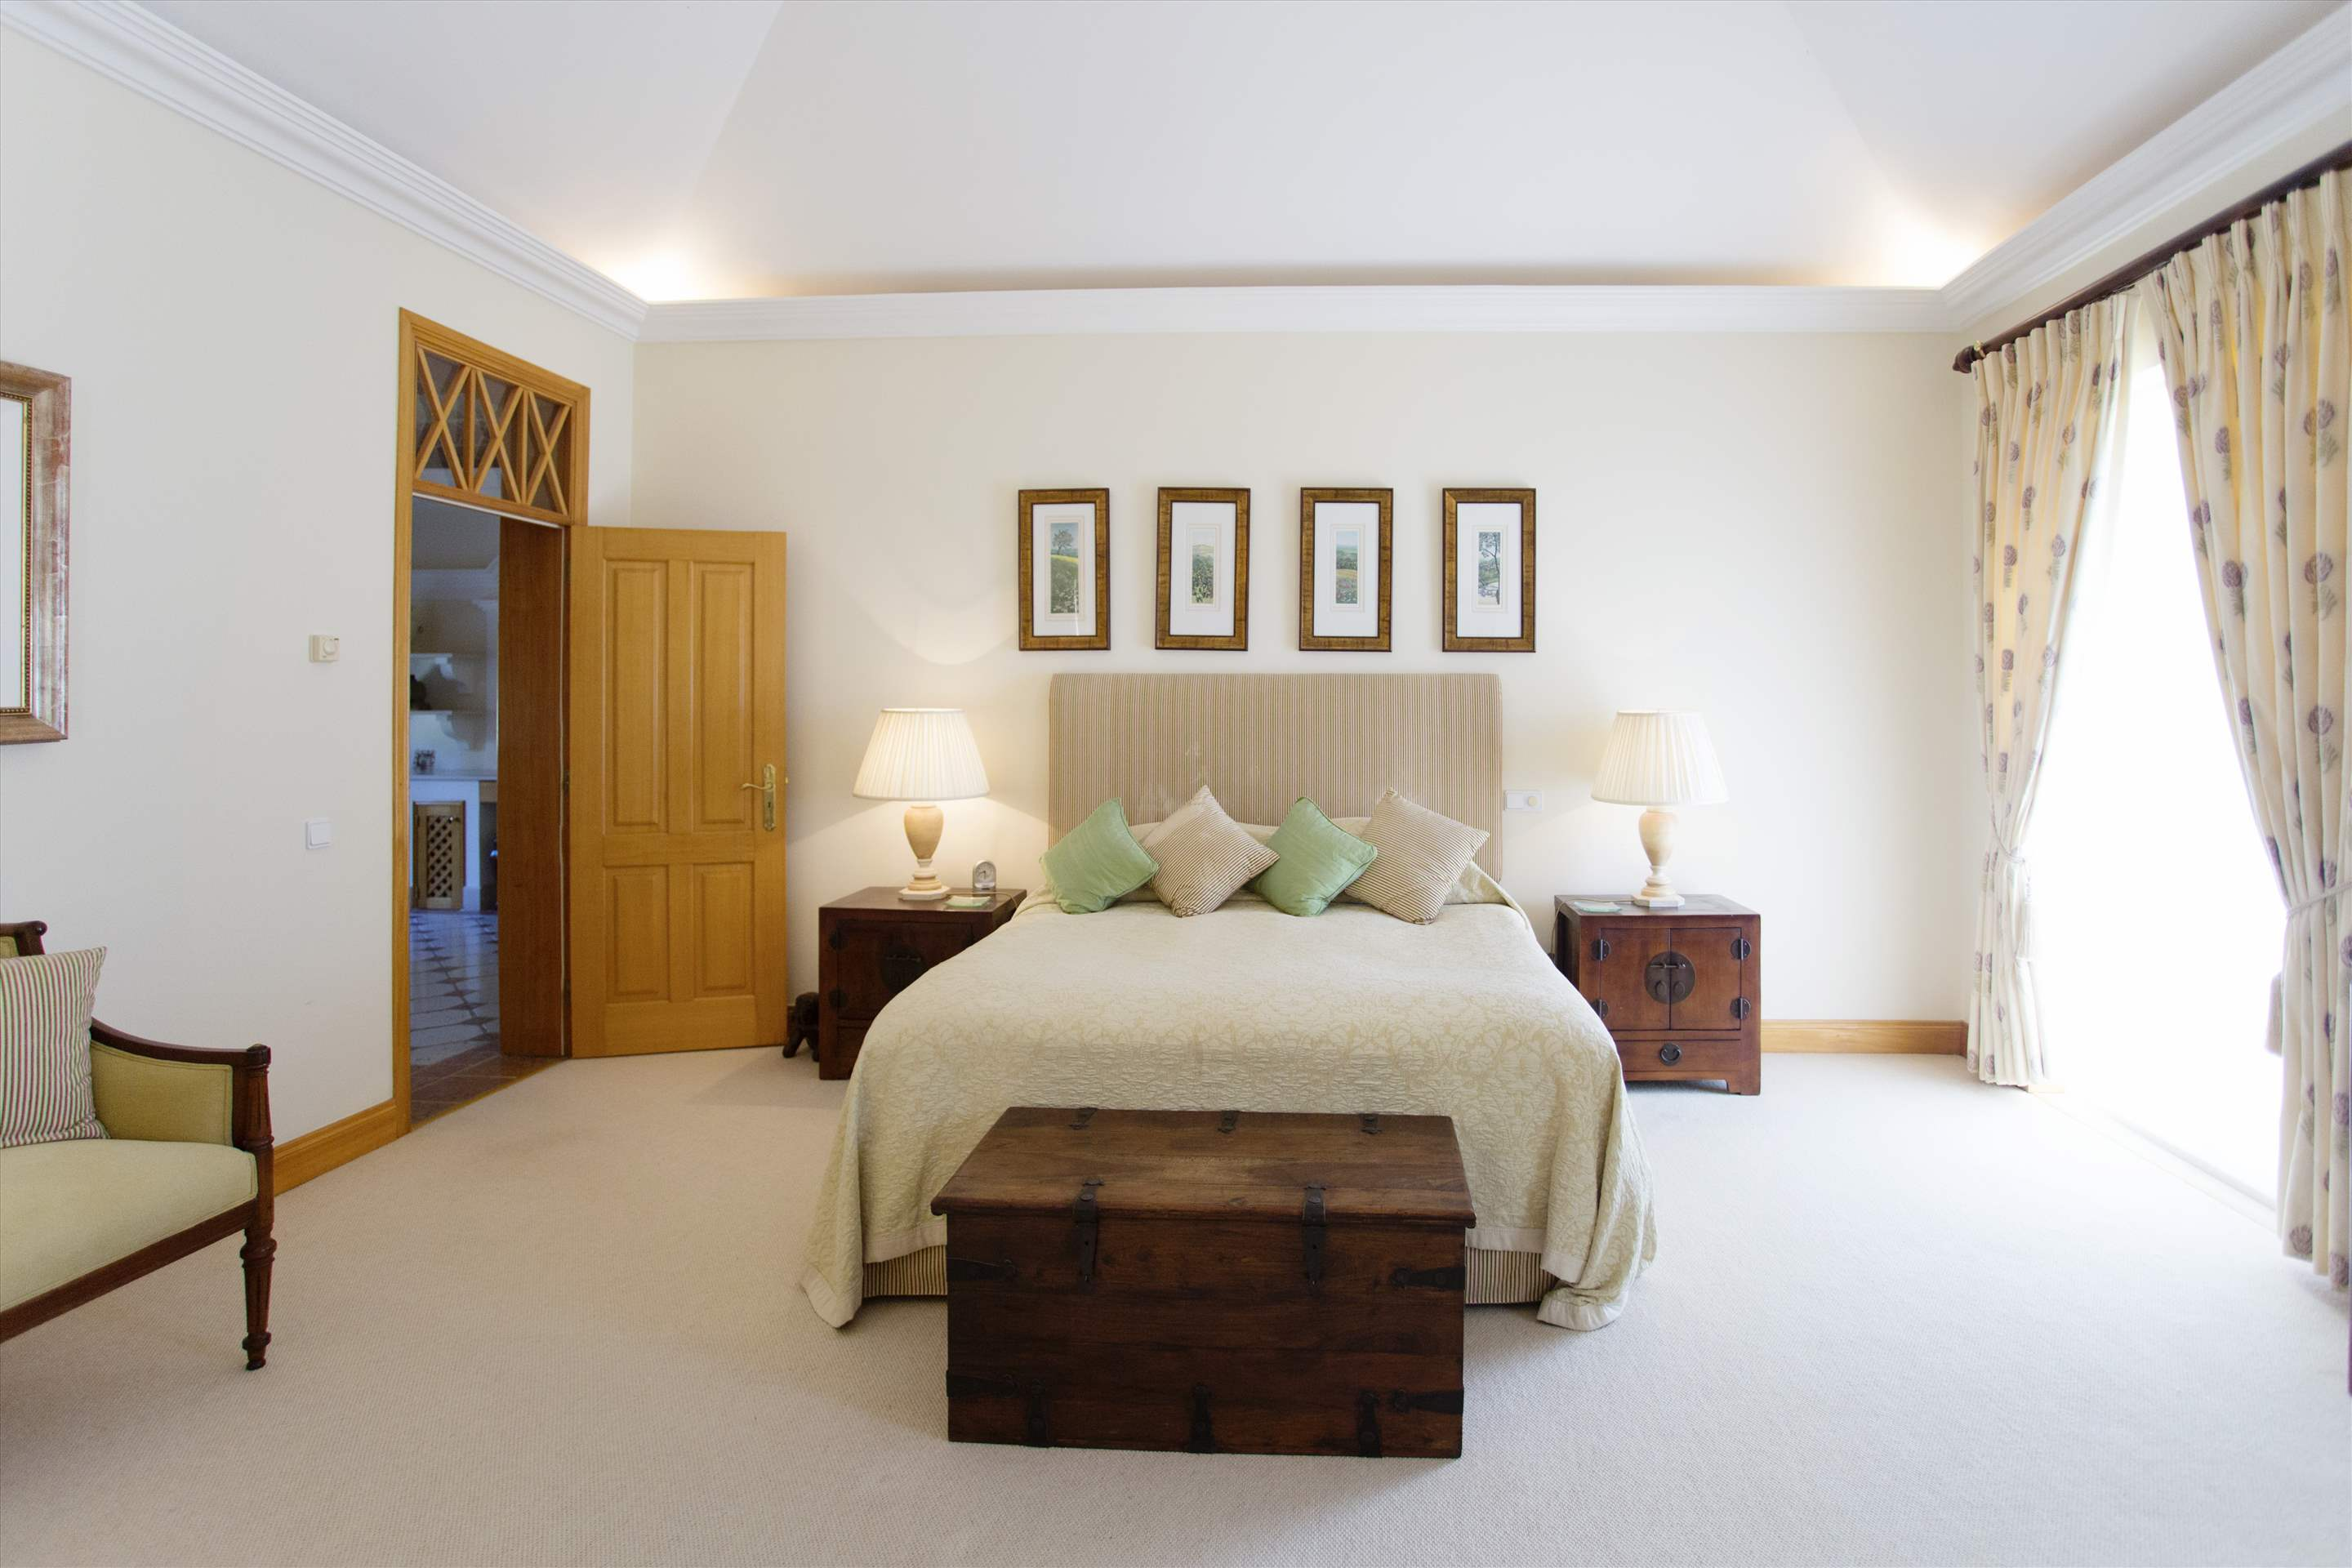 Villa Palmeiras Altas, 5 bedroom villa in Quinta do Lago, Algarve Photo #27